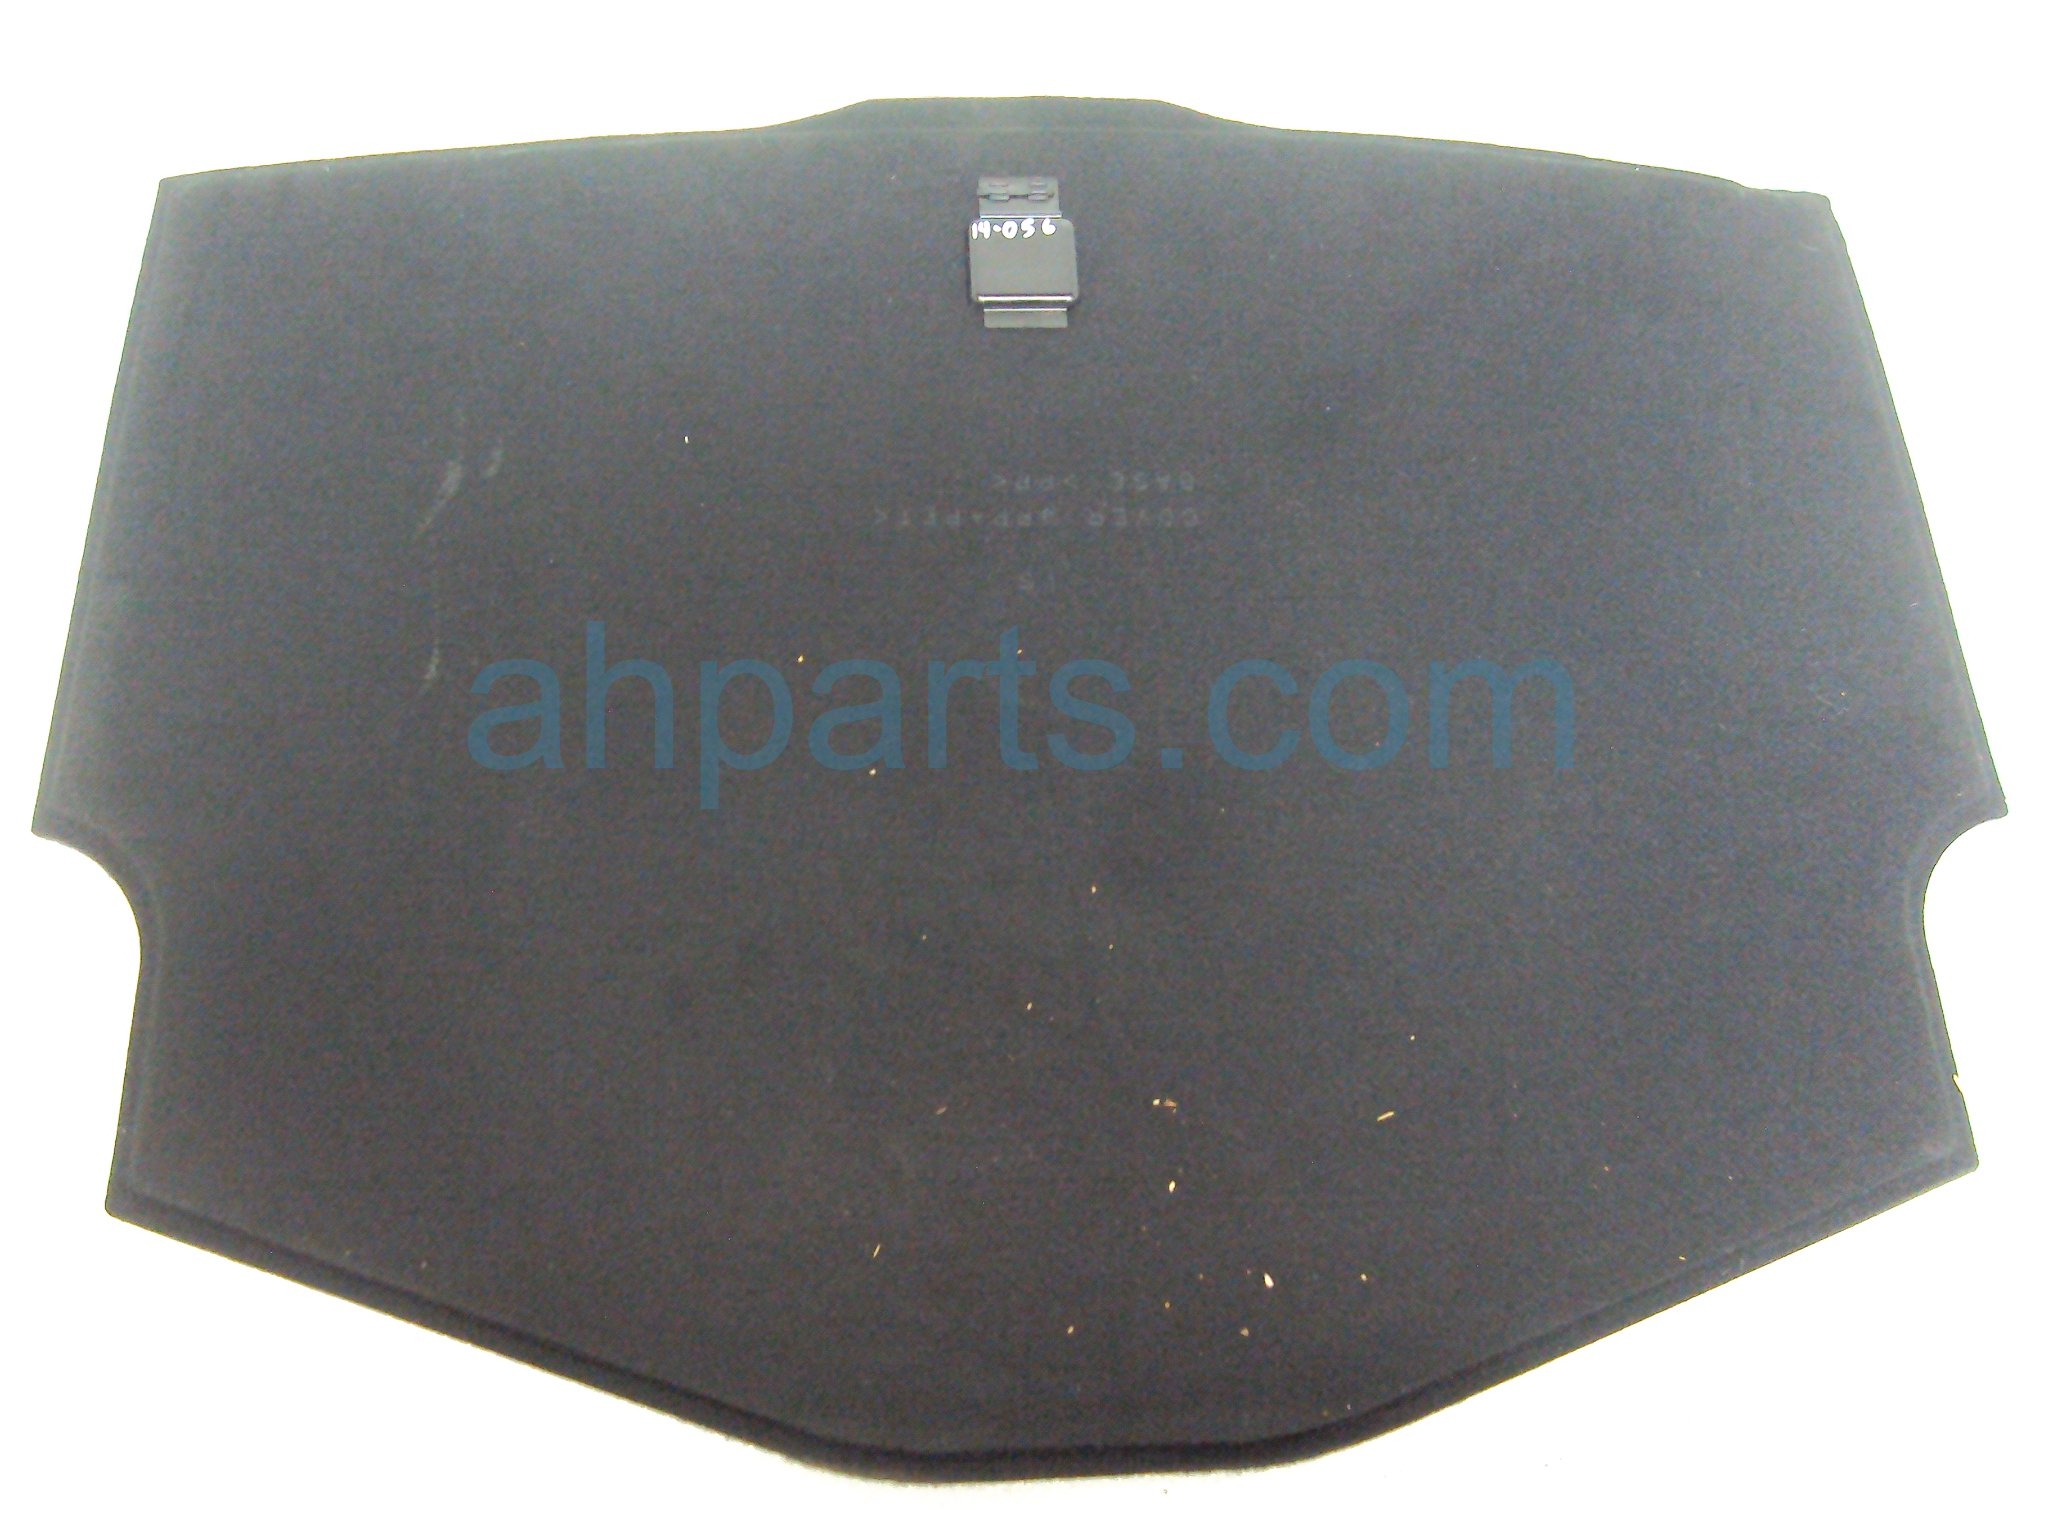 2007 Lexus Is 250 SPARE TIRE COVER BLACK Replacement